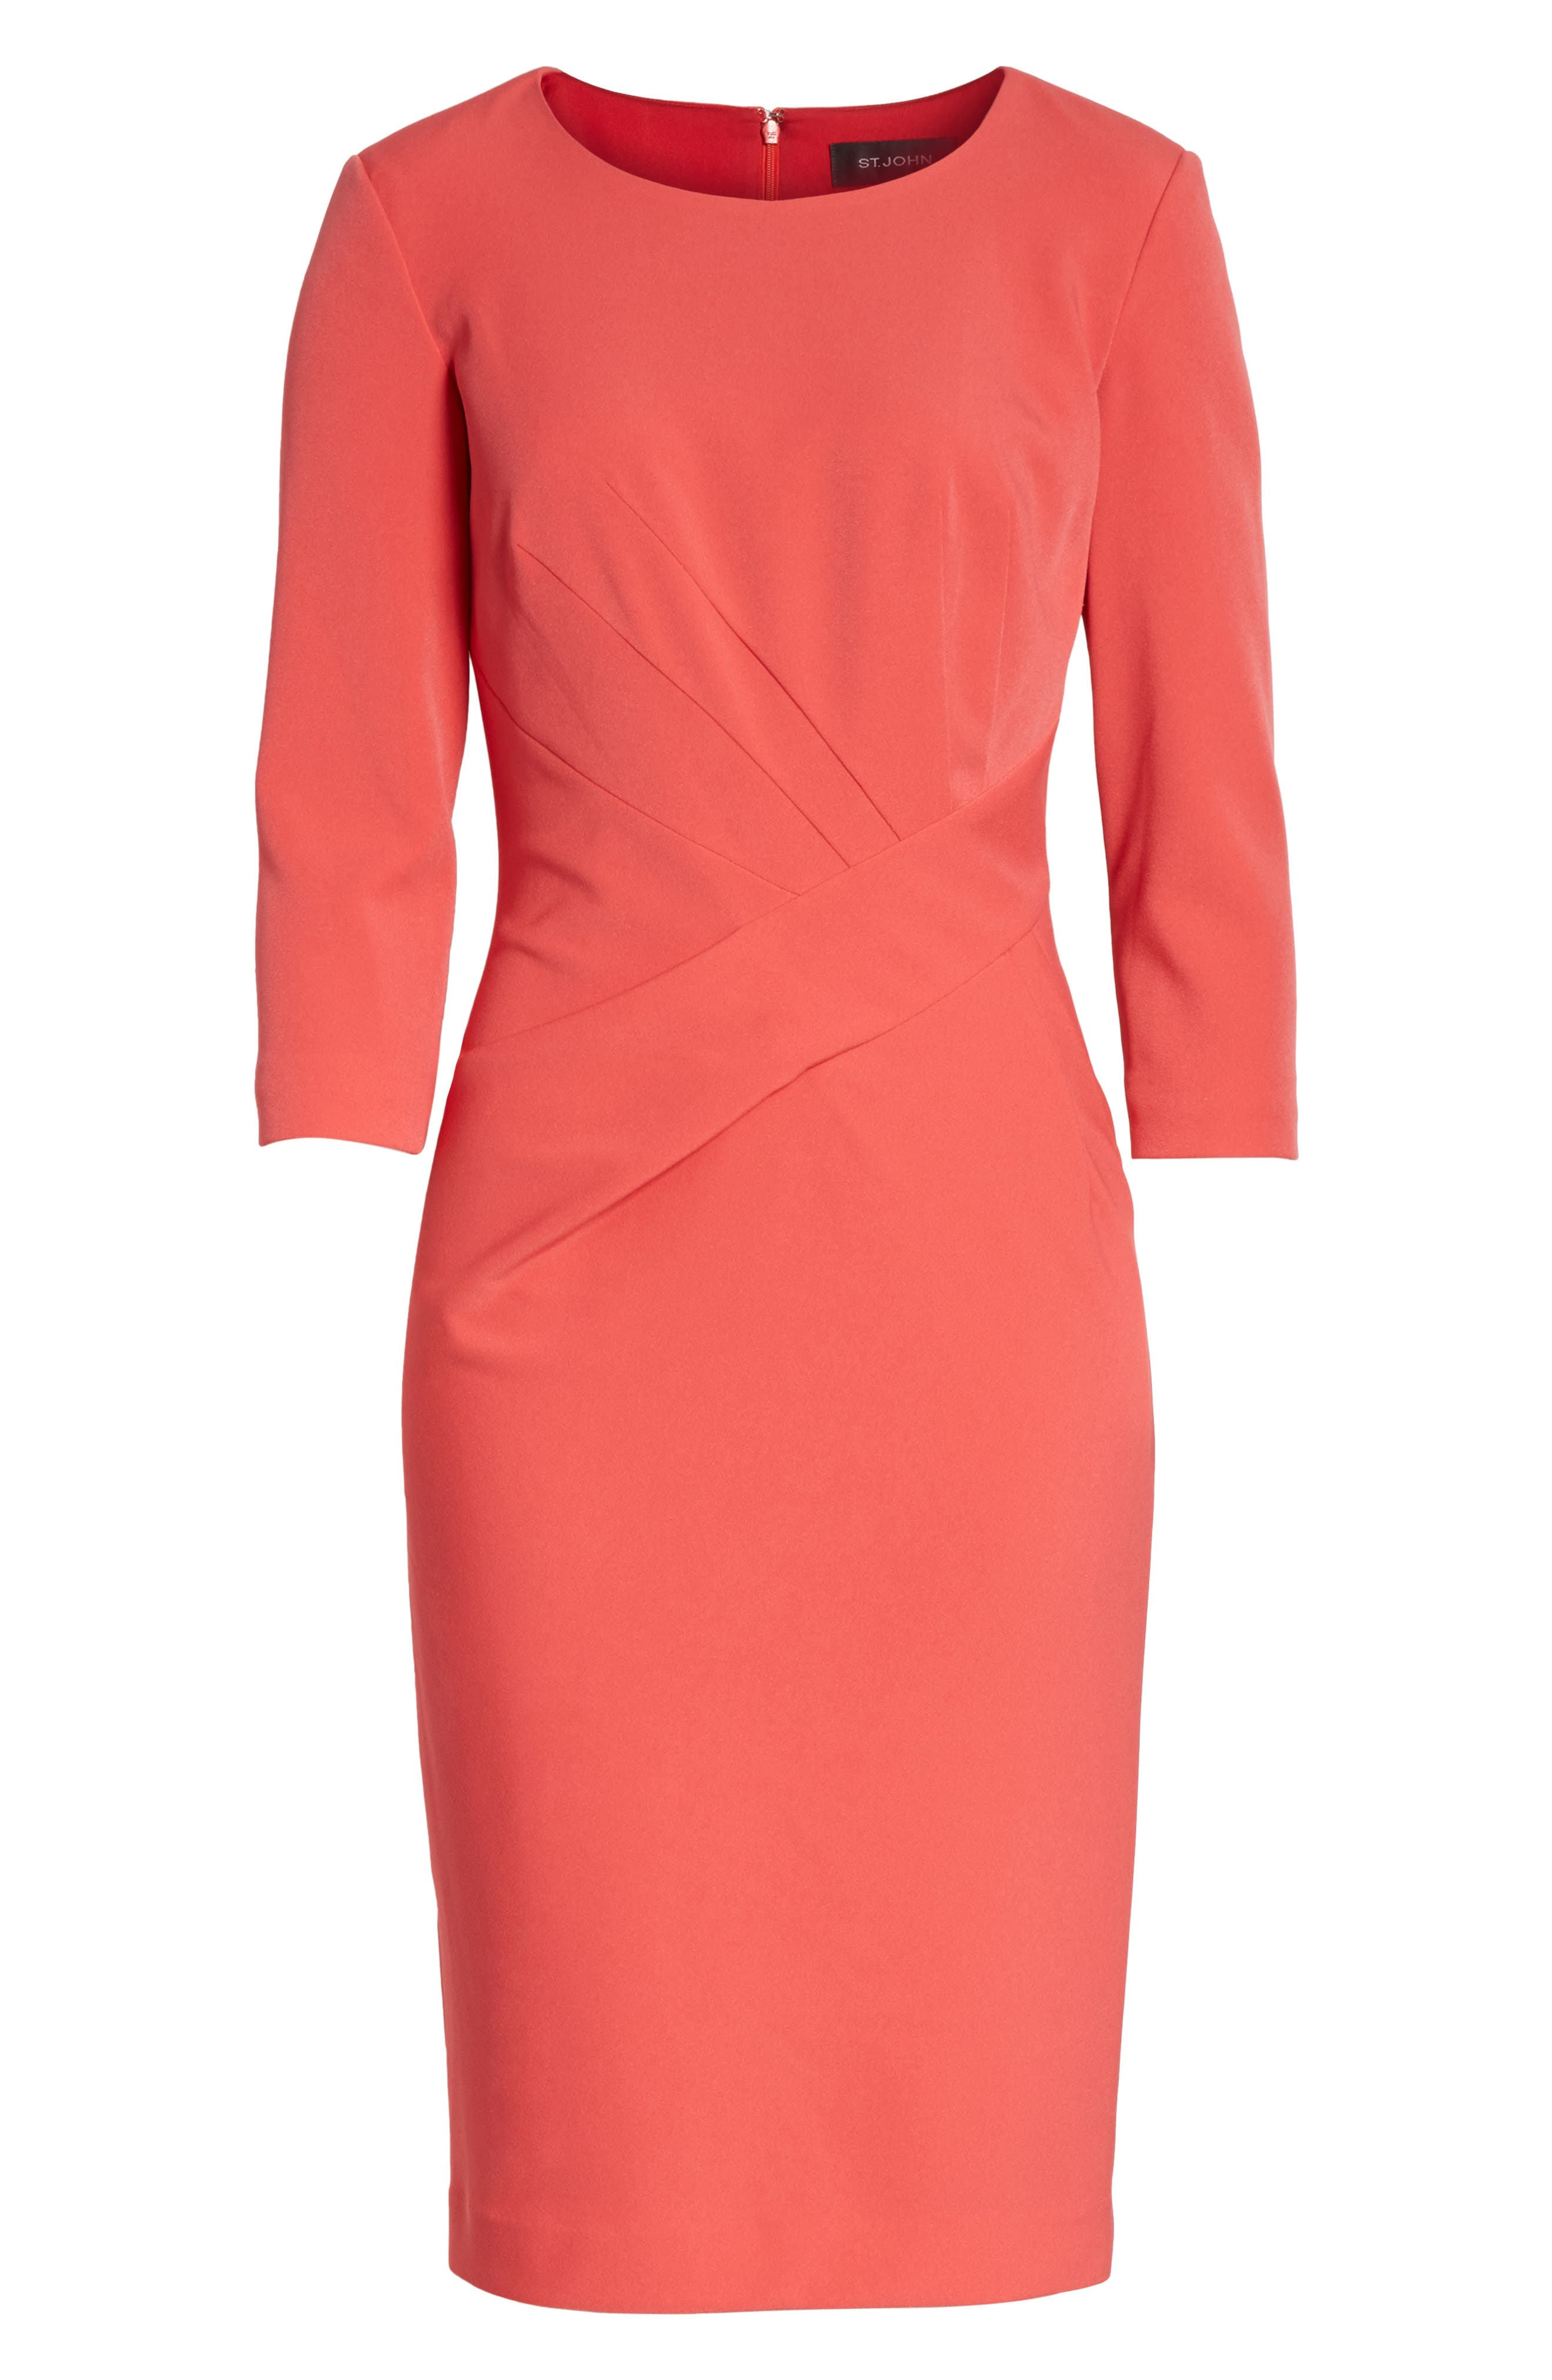 Stretch Crepe Dress,                             Alternate thumbnail 6, color,                             660